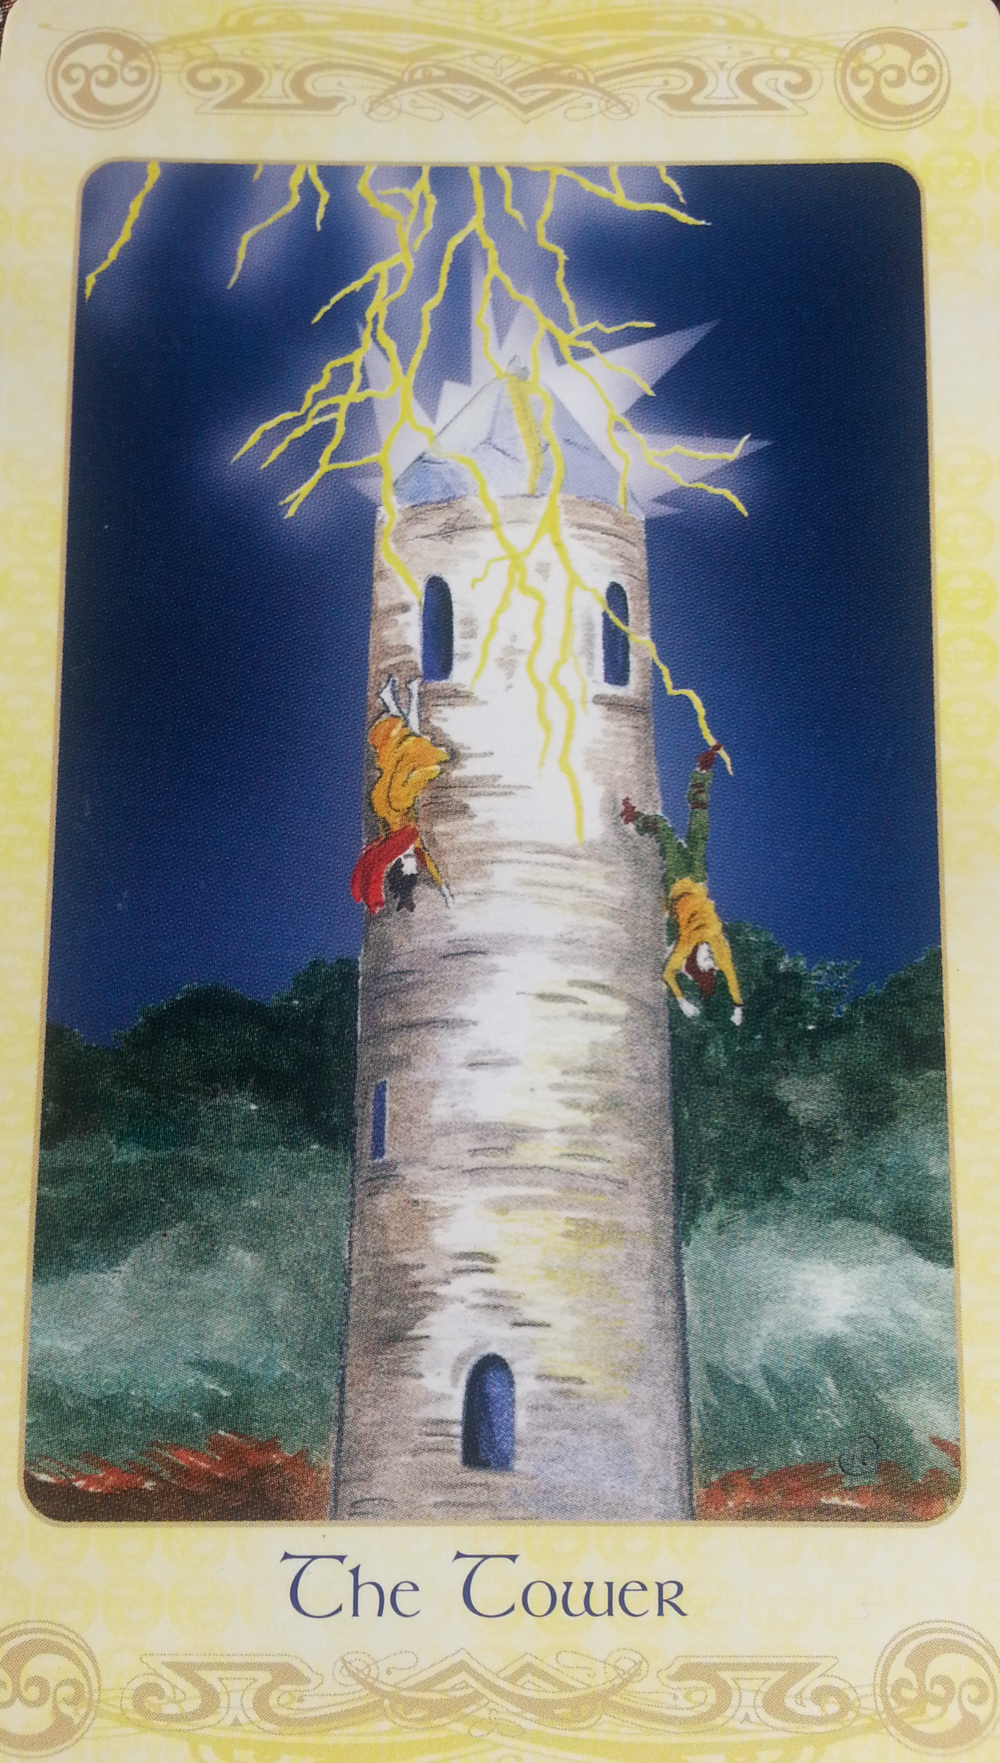 TYR'S DAY AUGUST 4TH 2015: THE TOWER-CARD SIXTEEN- MAJOR ARCANA- FREDDOM INEVITABLE CHANGE, ENLIGHTENMENT